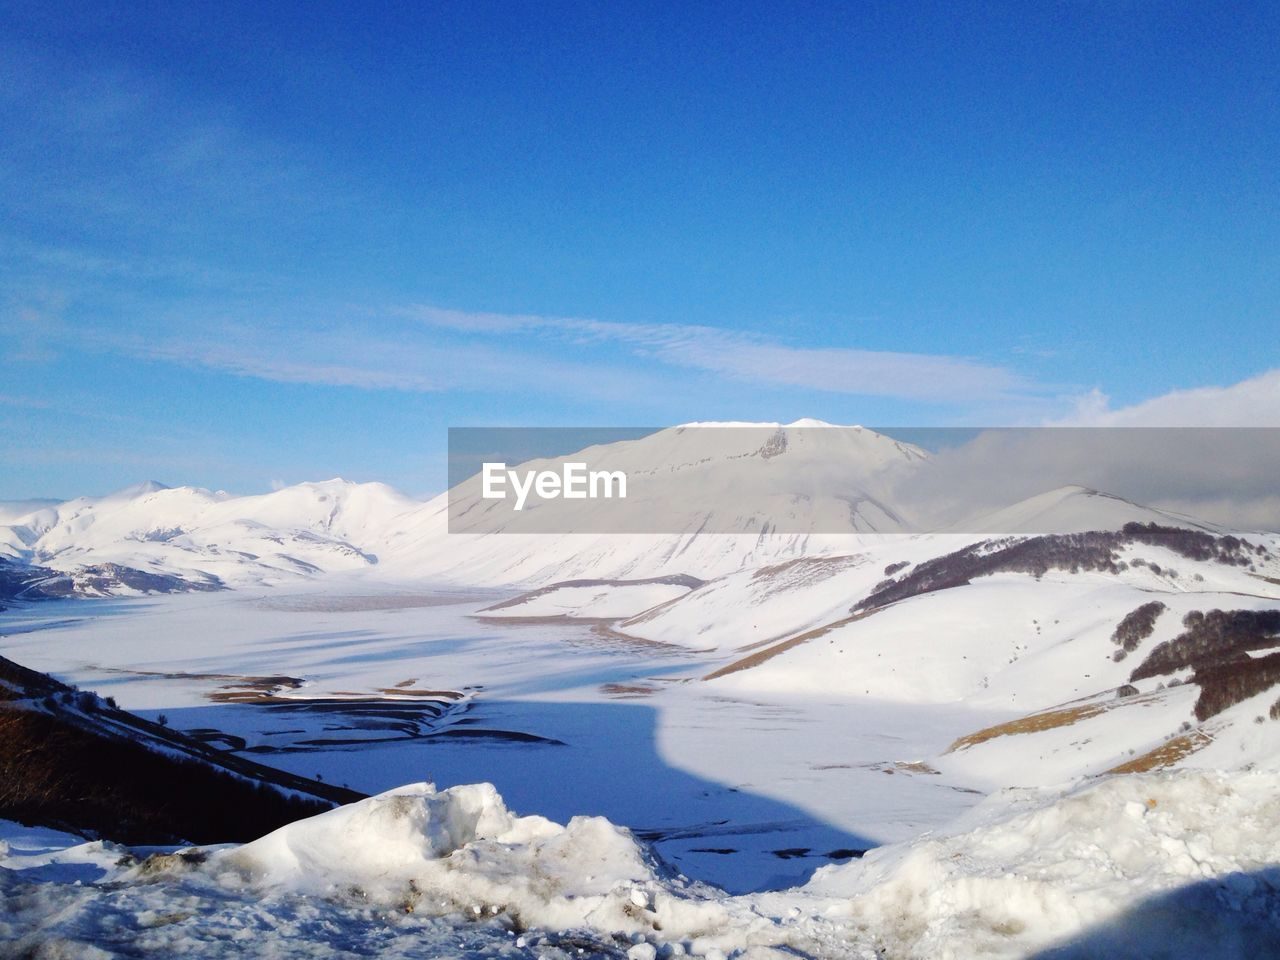 scenics, beauty in nature, tranquil scene, tranquility, nature, mountain, snow, cold temperature, no people, winter, white color, idyllic, blue, day, snowcapped mountain, outdoors, mountain range, landscape, sky, lake, water, iceberg